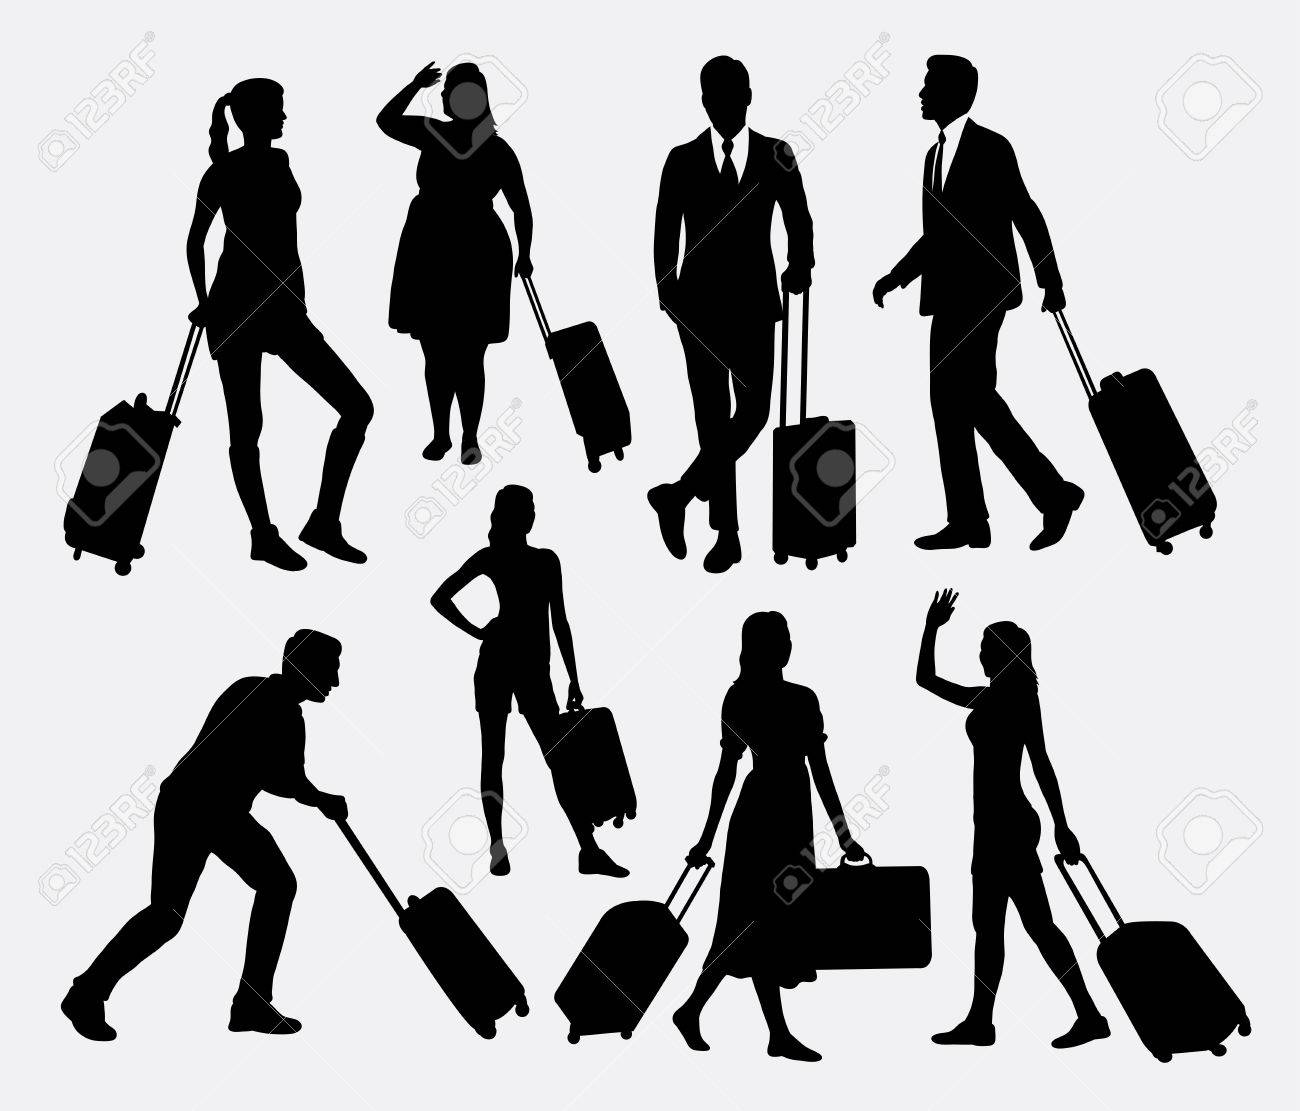 People male and female traveling silhouettes - 46756688